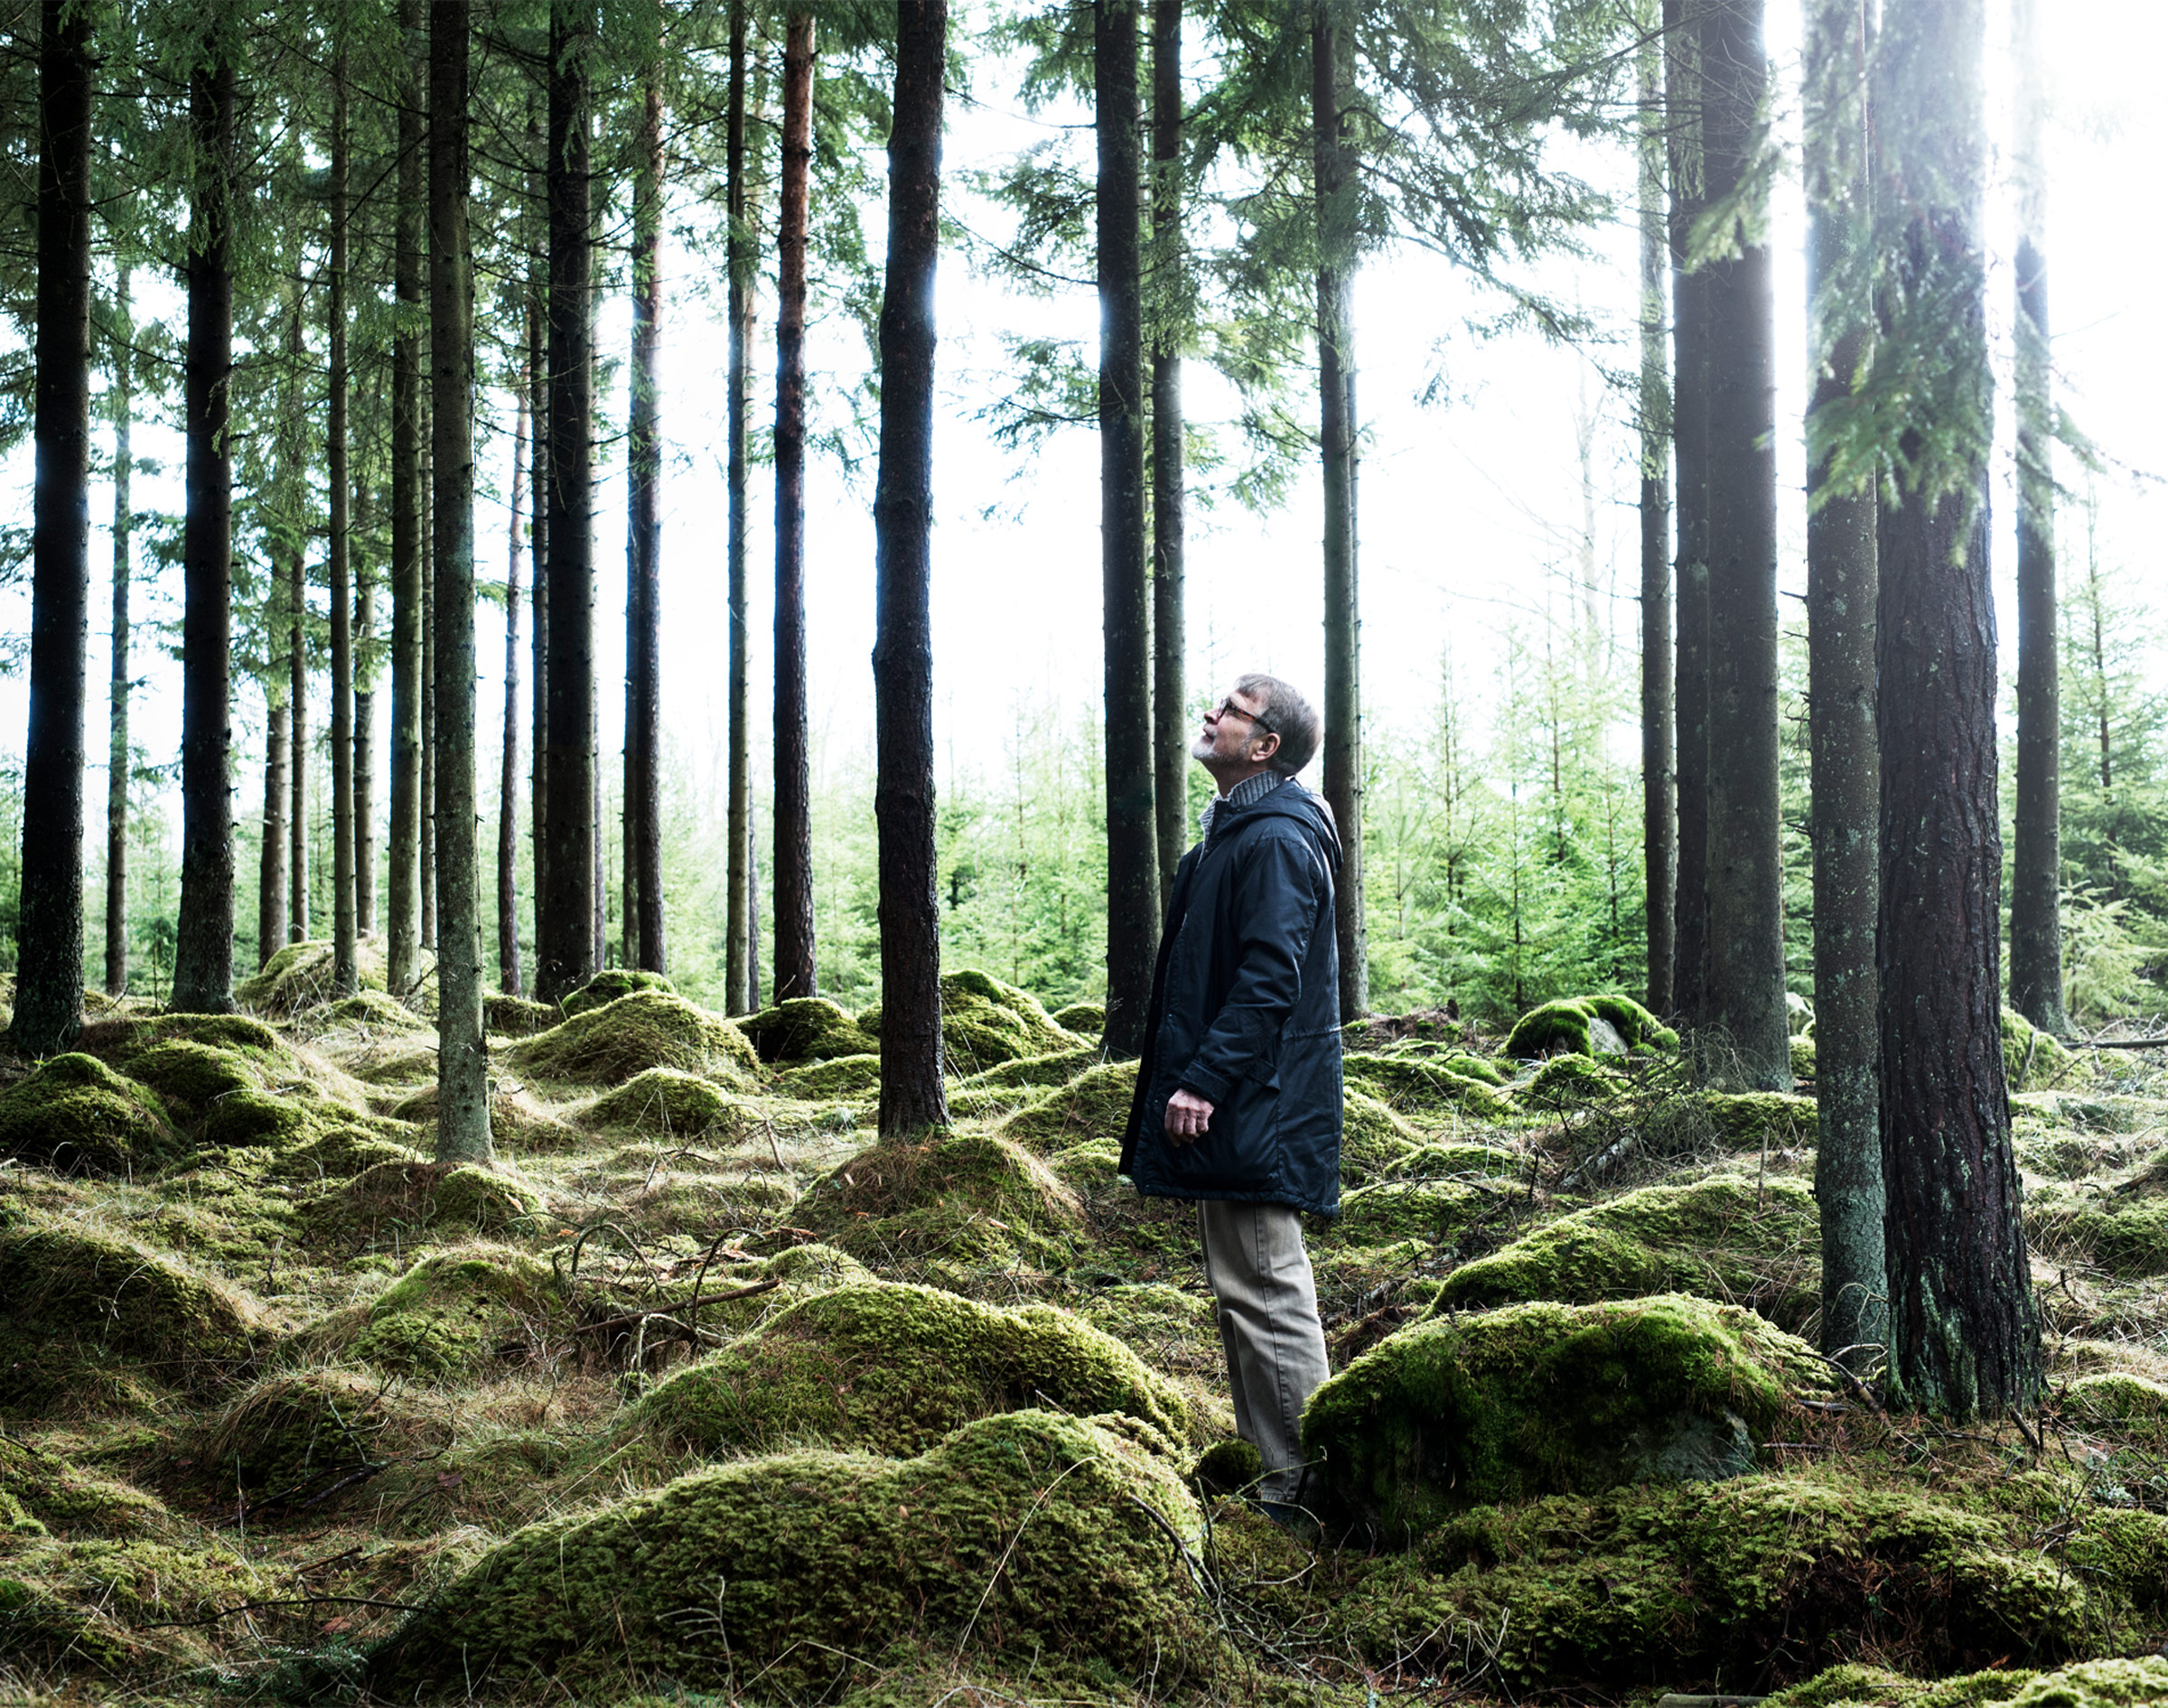 A man wearing a black parka jacket standing in a forest and looking up at the trees.